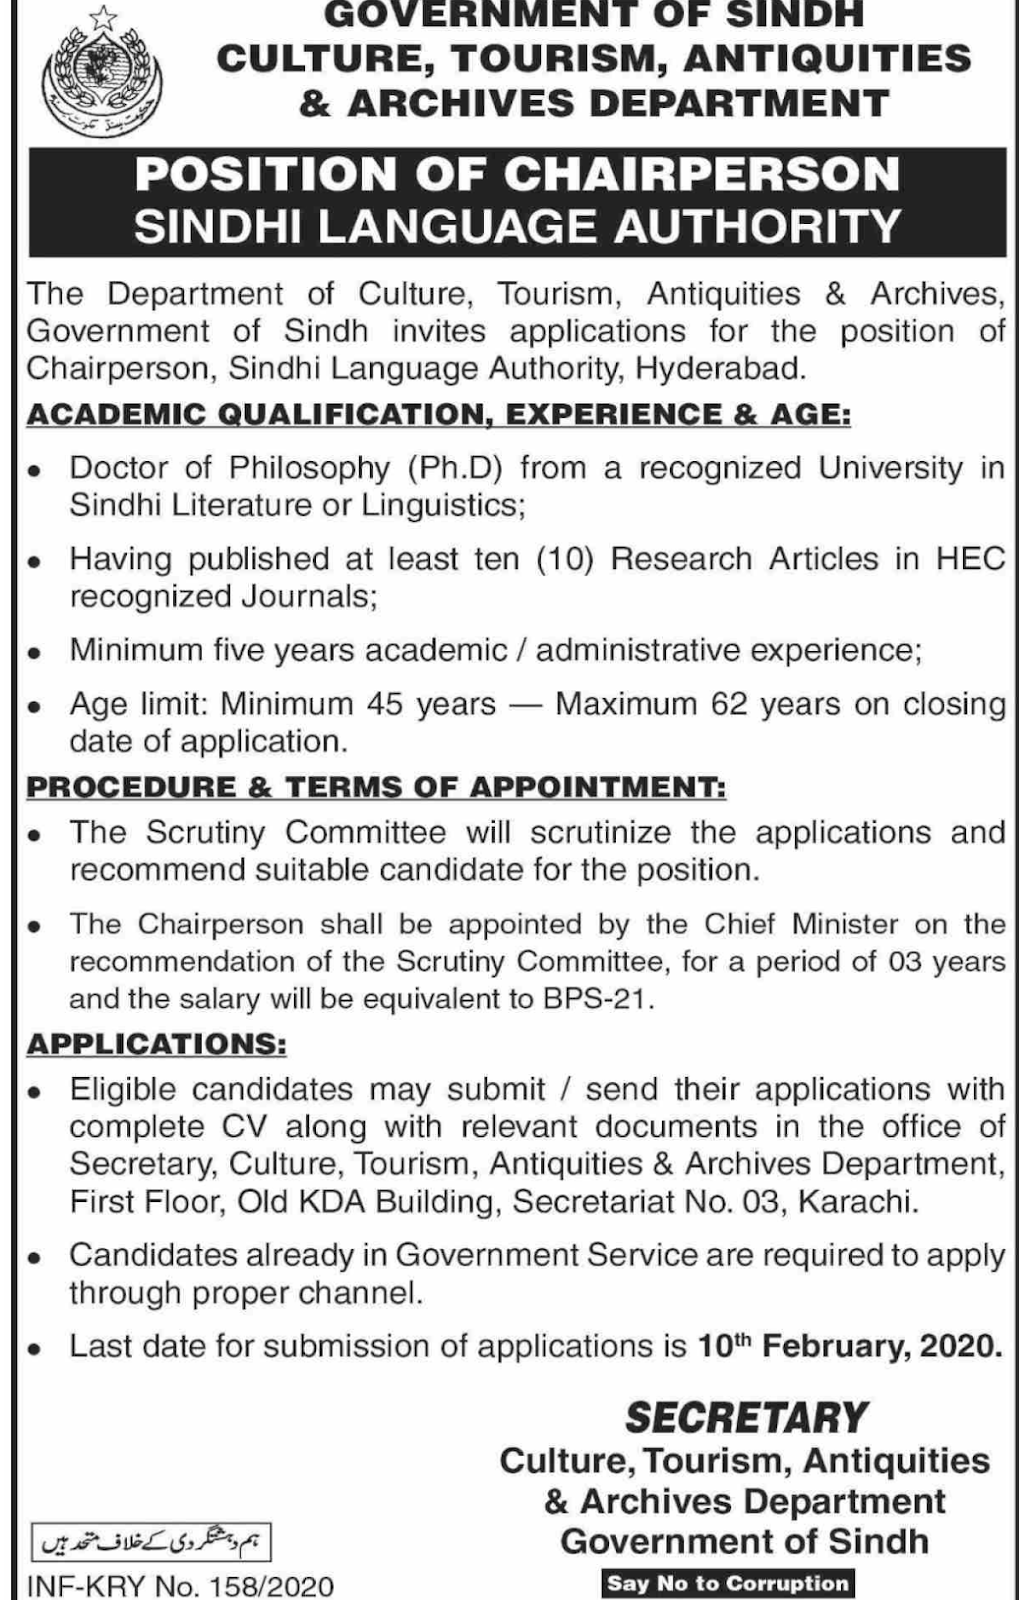 Jobs in Culture, Tourism, Antiquities and Archies Department Govt of Sindh 2020